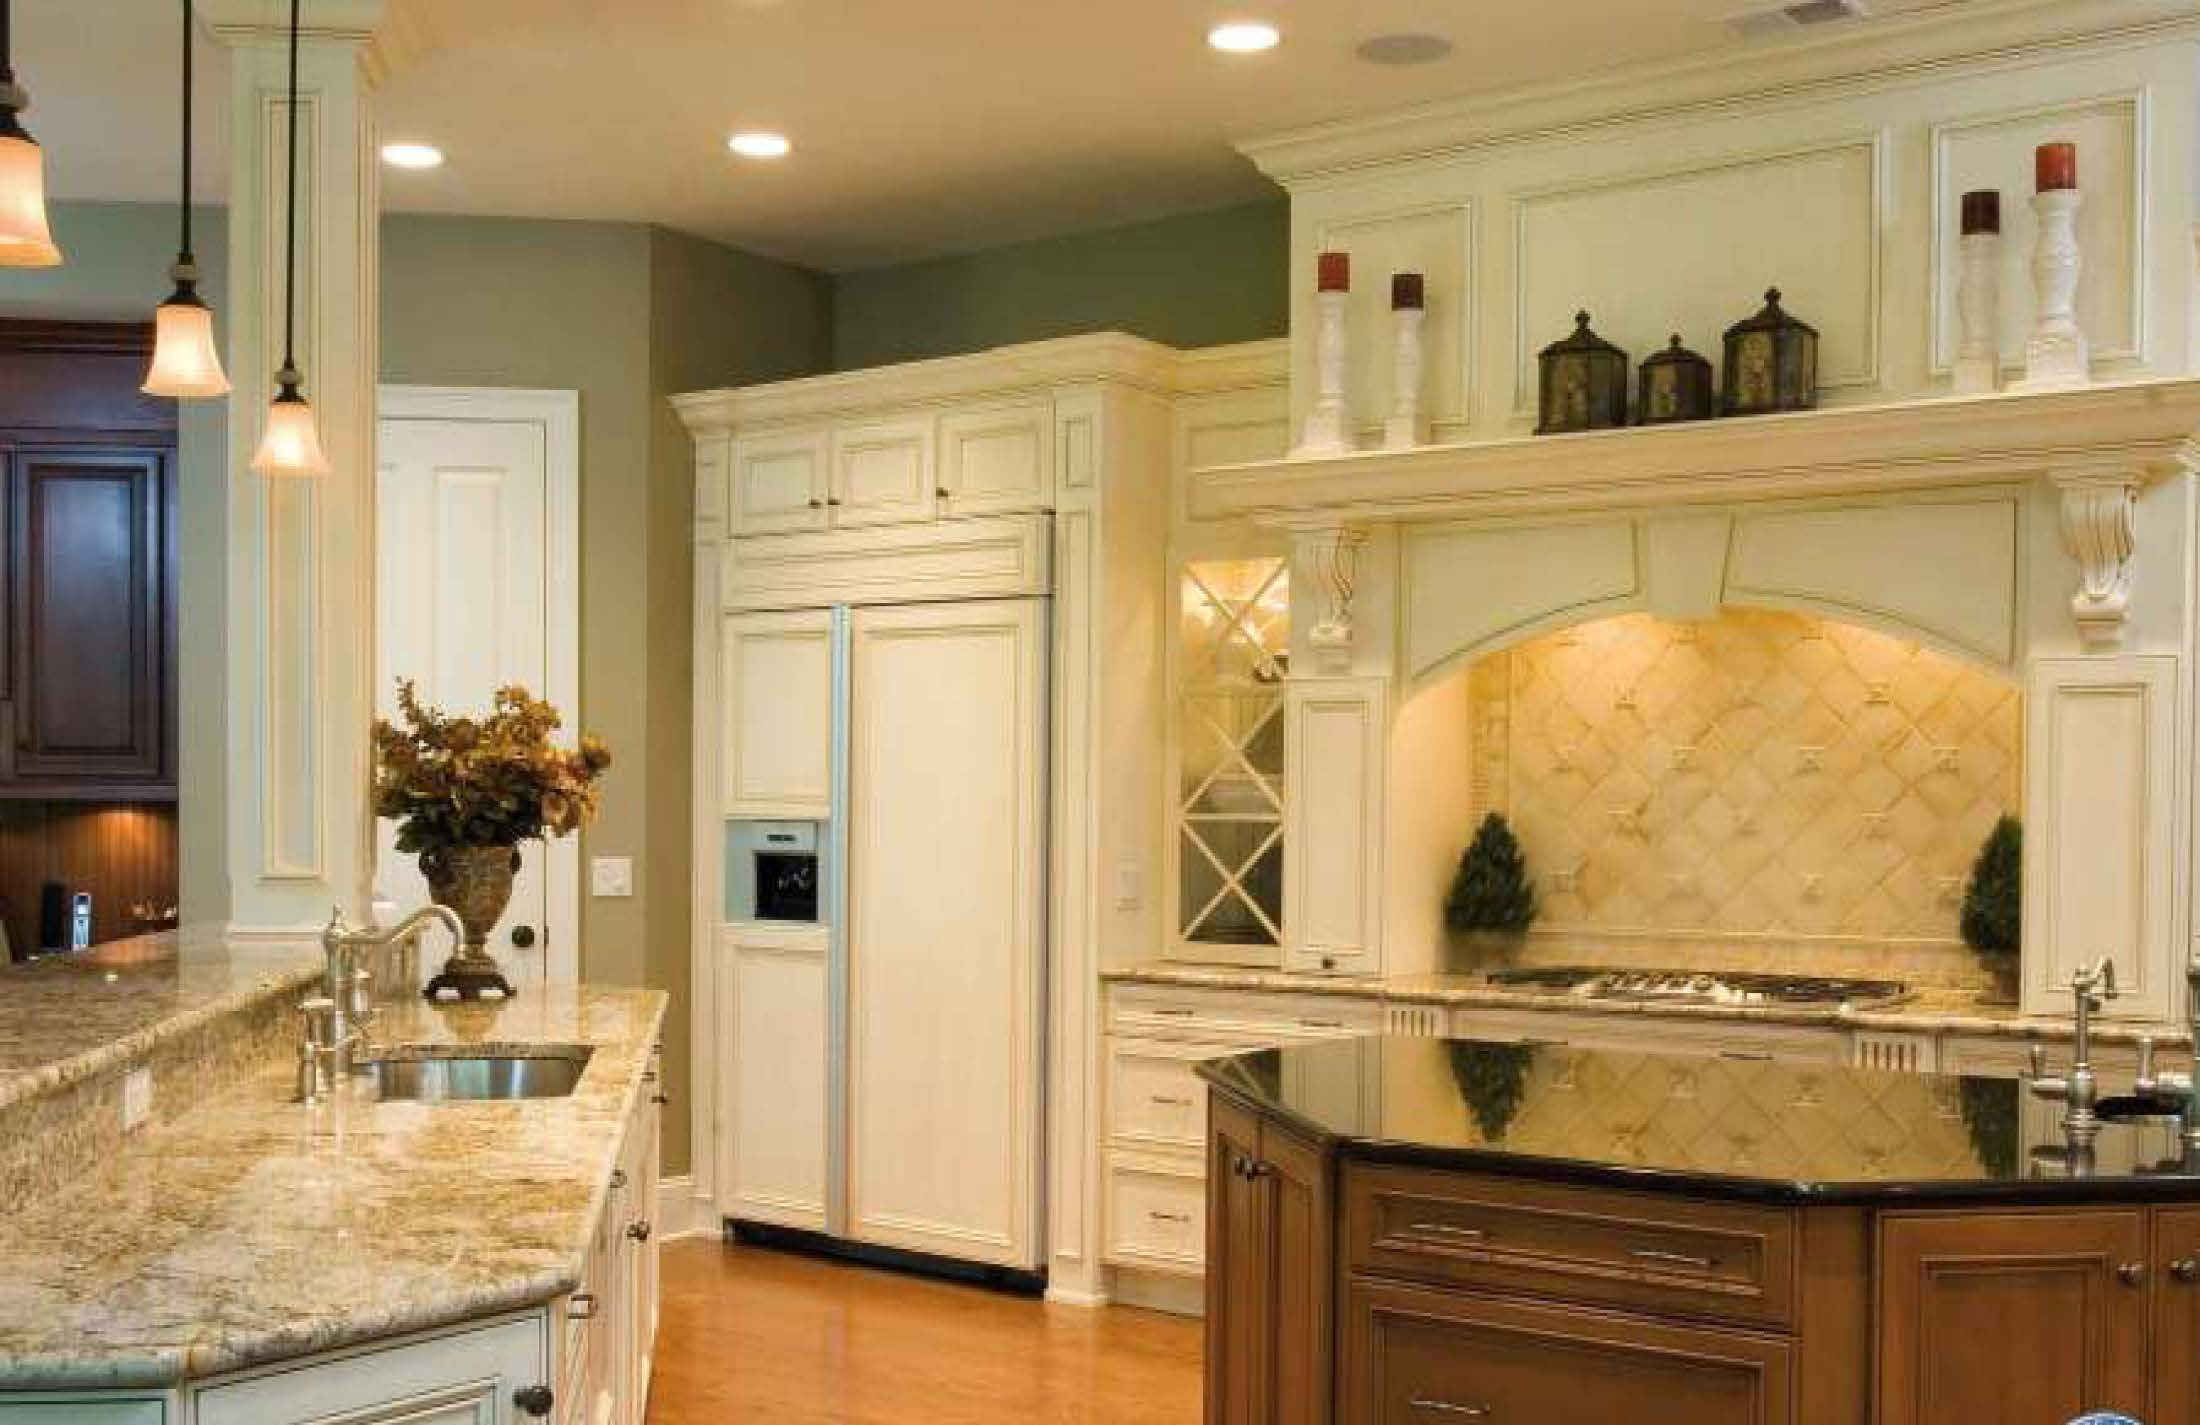 Amazing Lowe's Kitchen Cabinets Prices 2200 x 1425 · 179 kB · jpeg